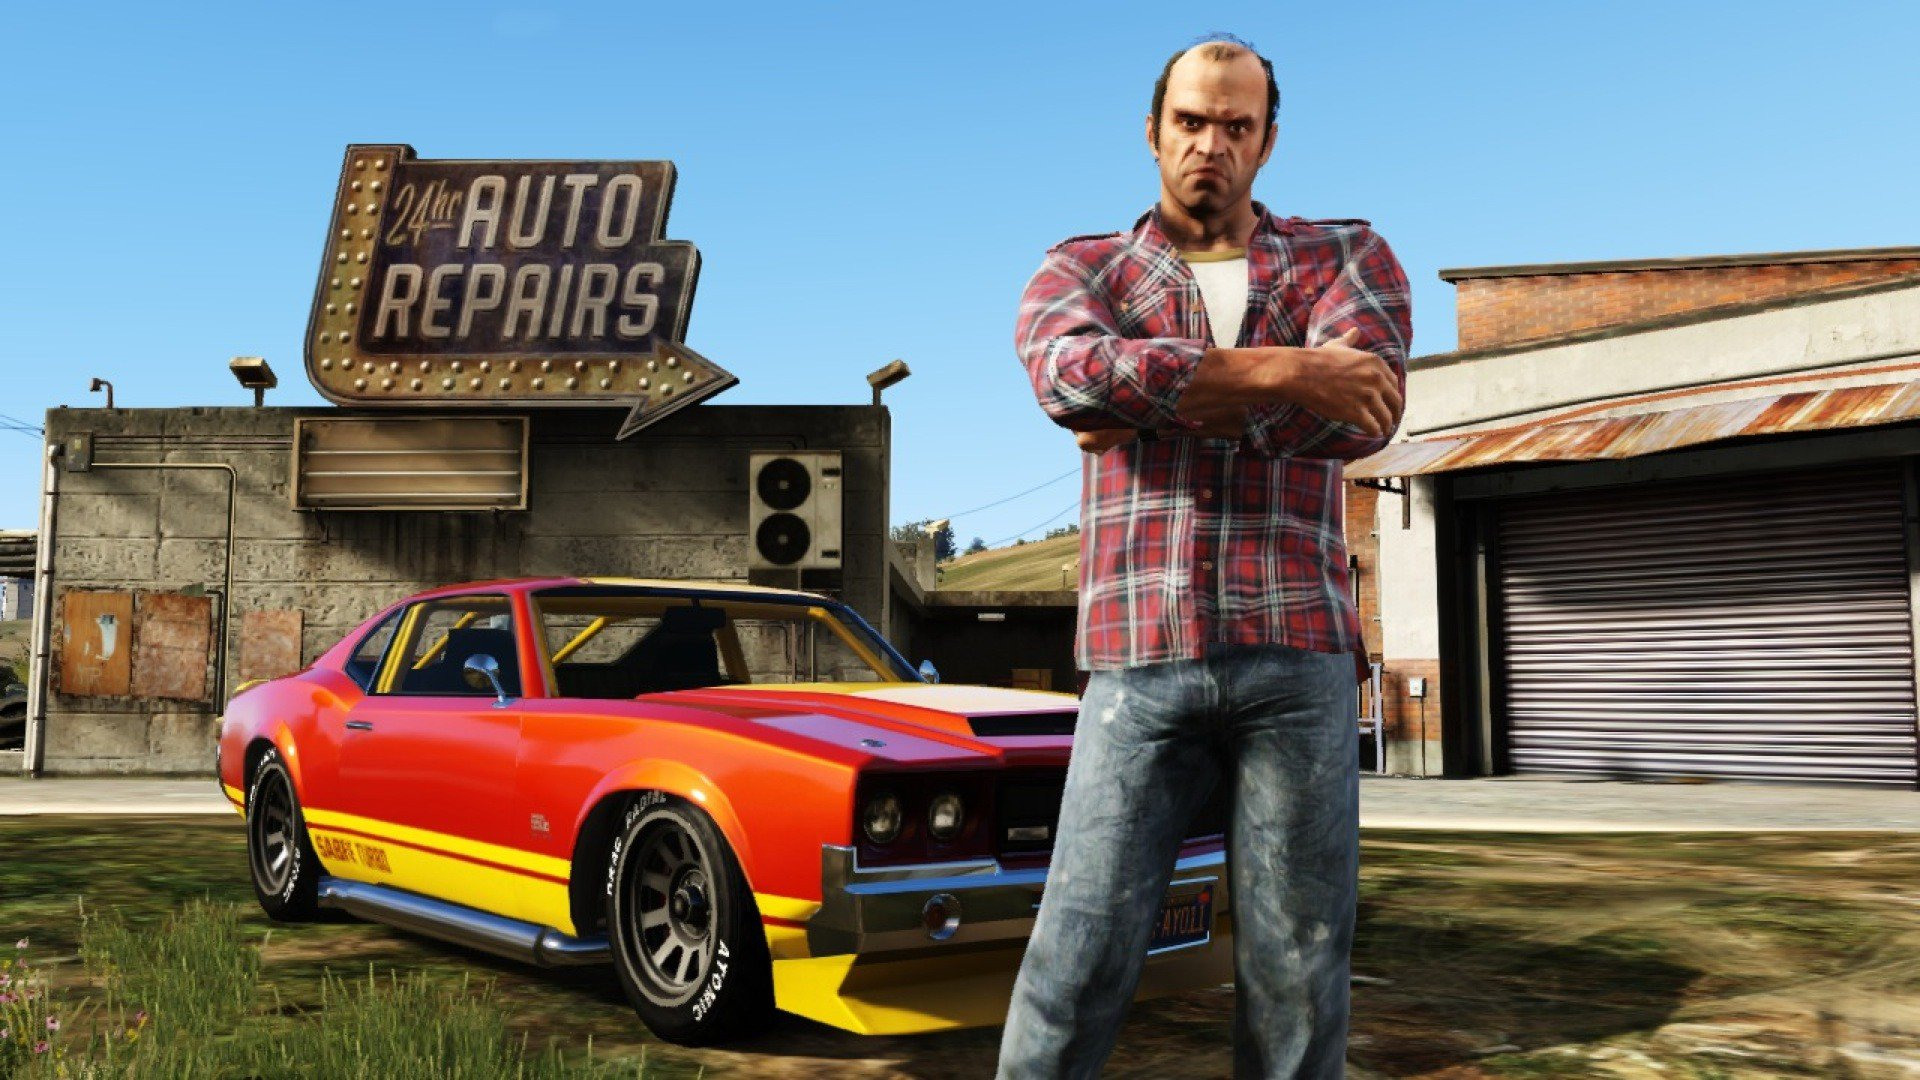 Grand Theft Auto Repairs GTA 5 Wallpaper HD 322 Wallpaper 1920x1080